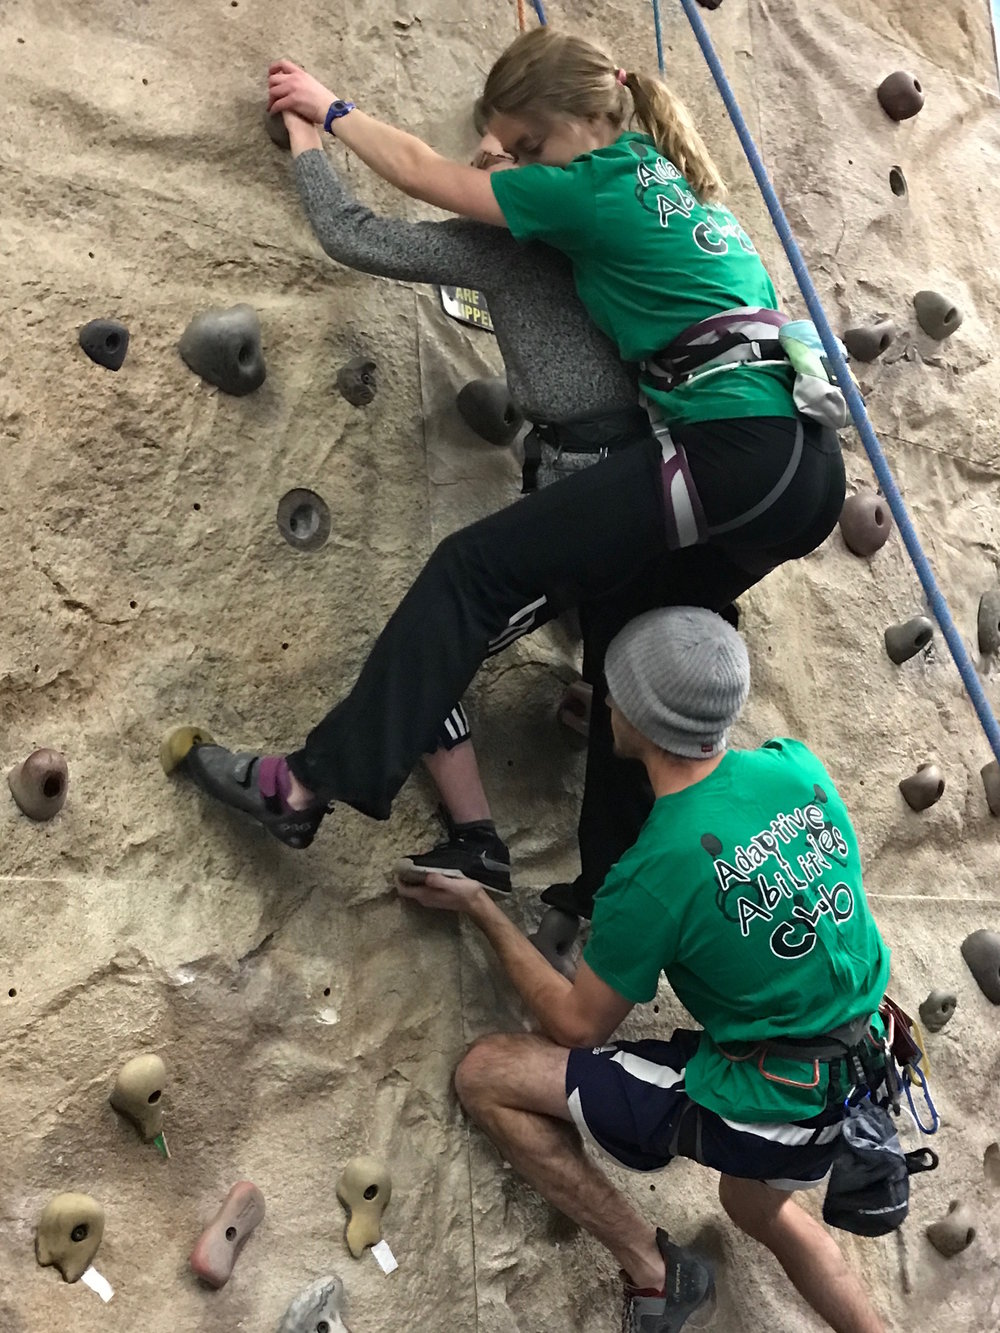 Adaptive Abilities Club members Kelly Bush and Zach Hodgson help Matthew Knowles rock climb (Photo by Marquette University)